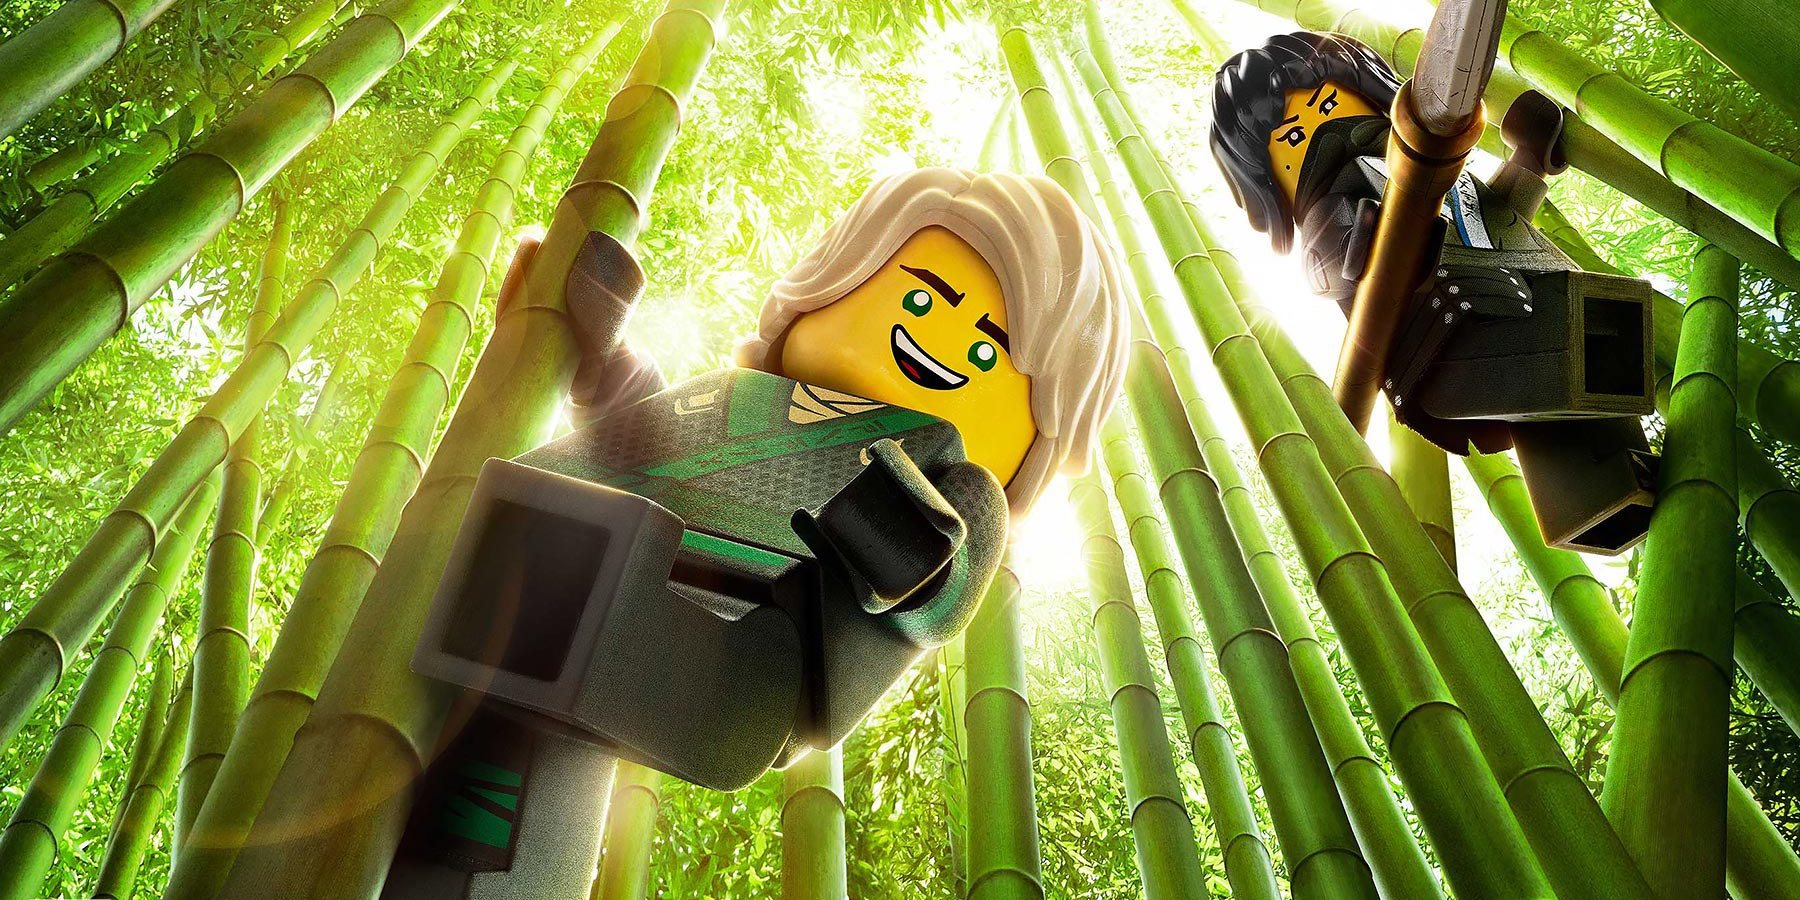 The LEGO Ninjago Movie Poster Cropped